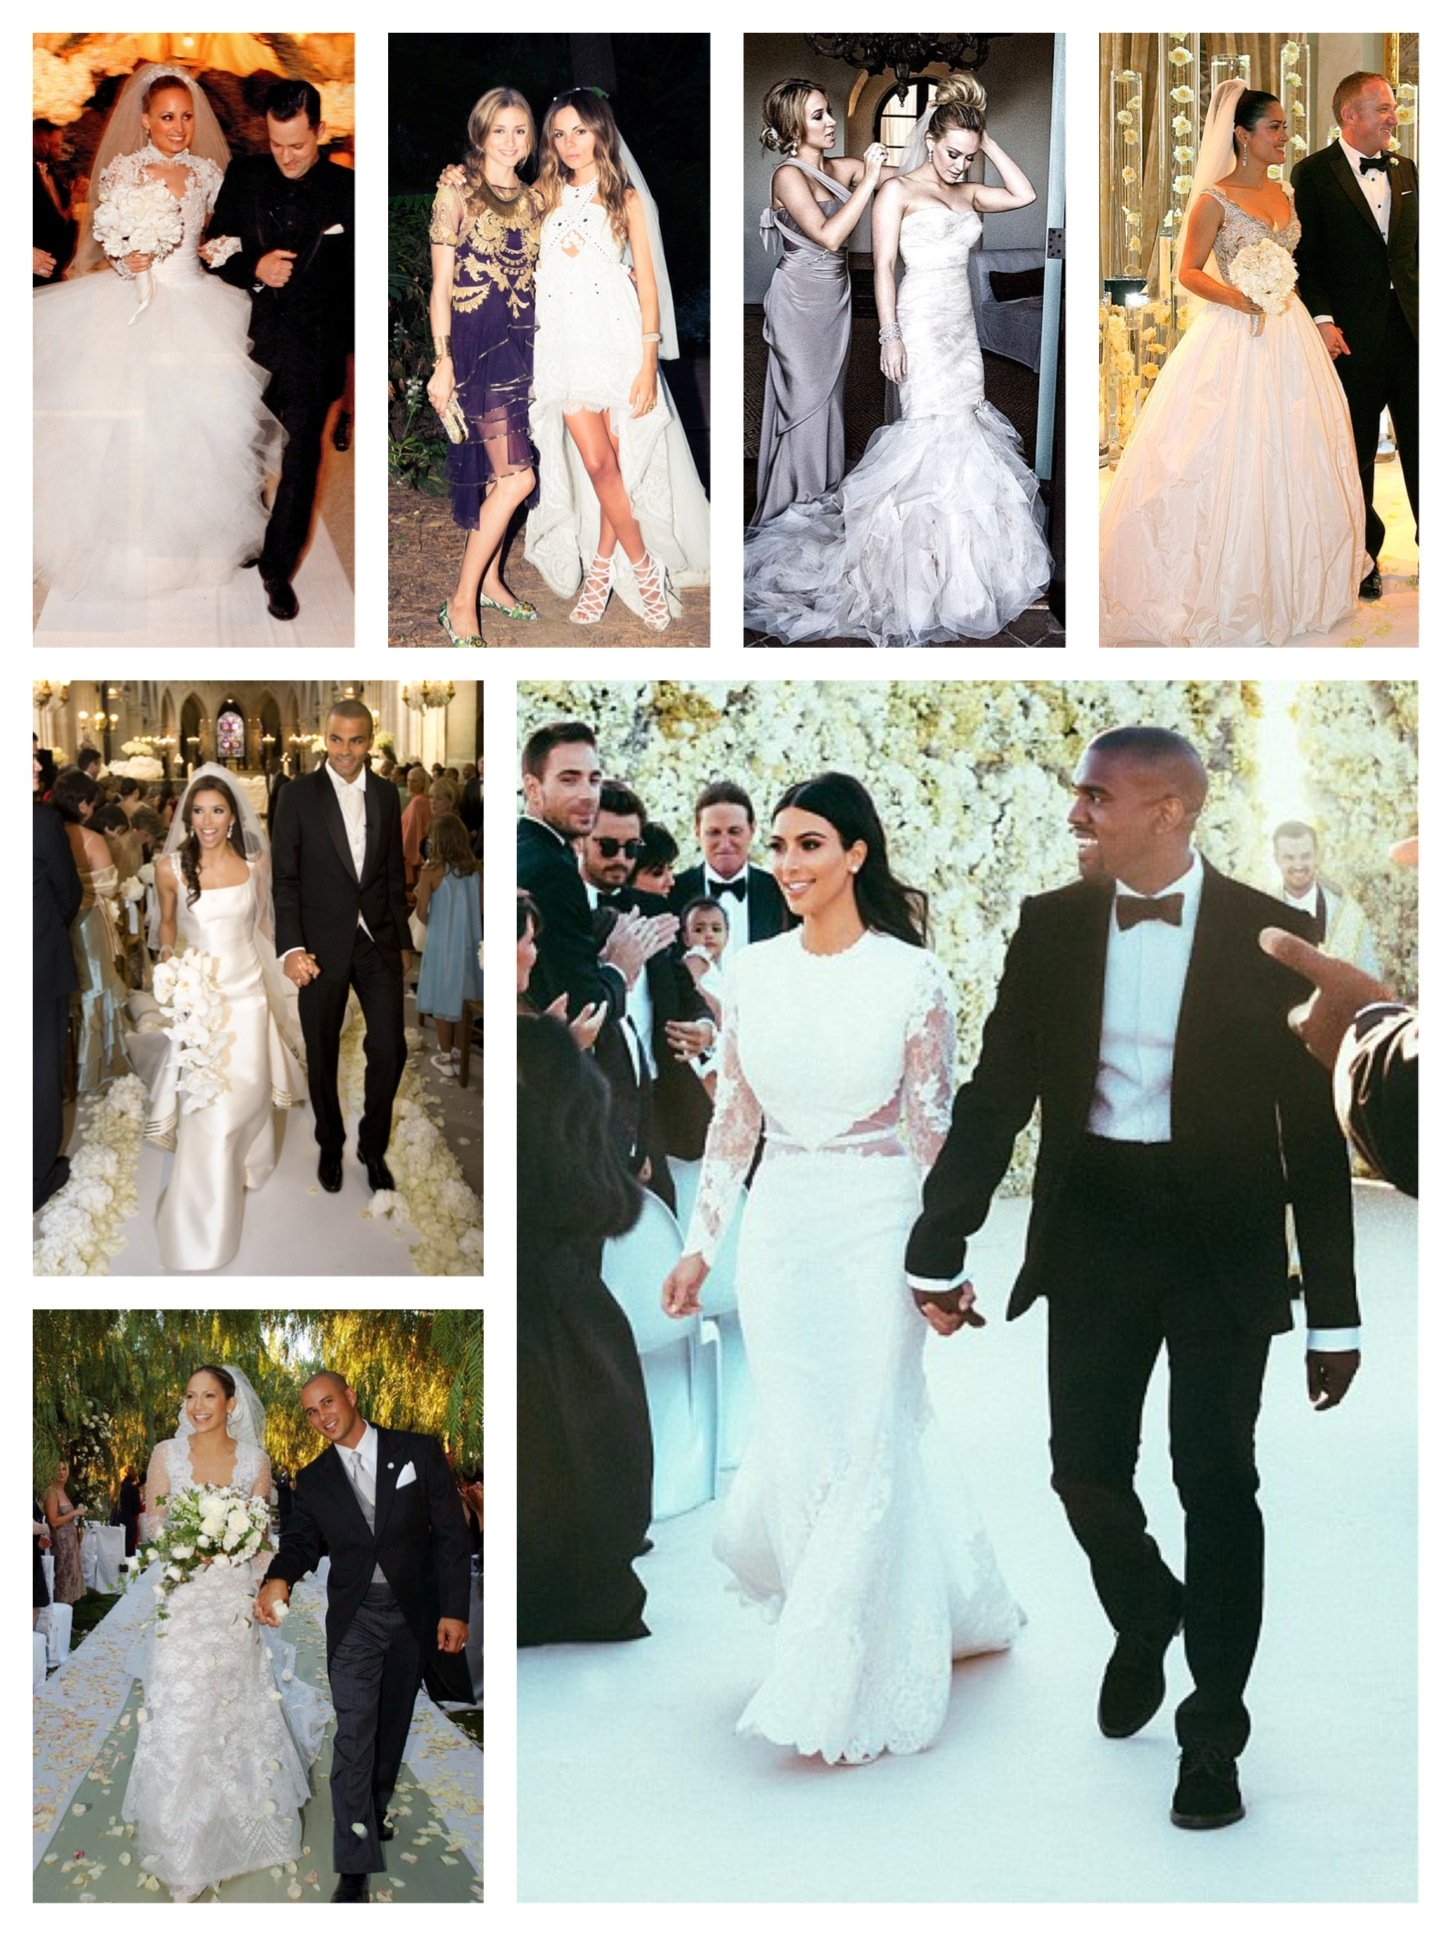 Petite celebrity wedding dresses